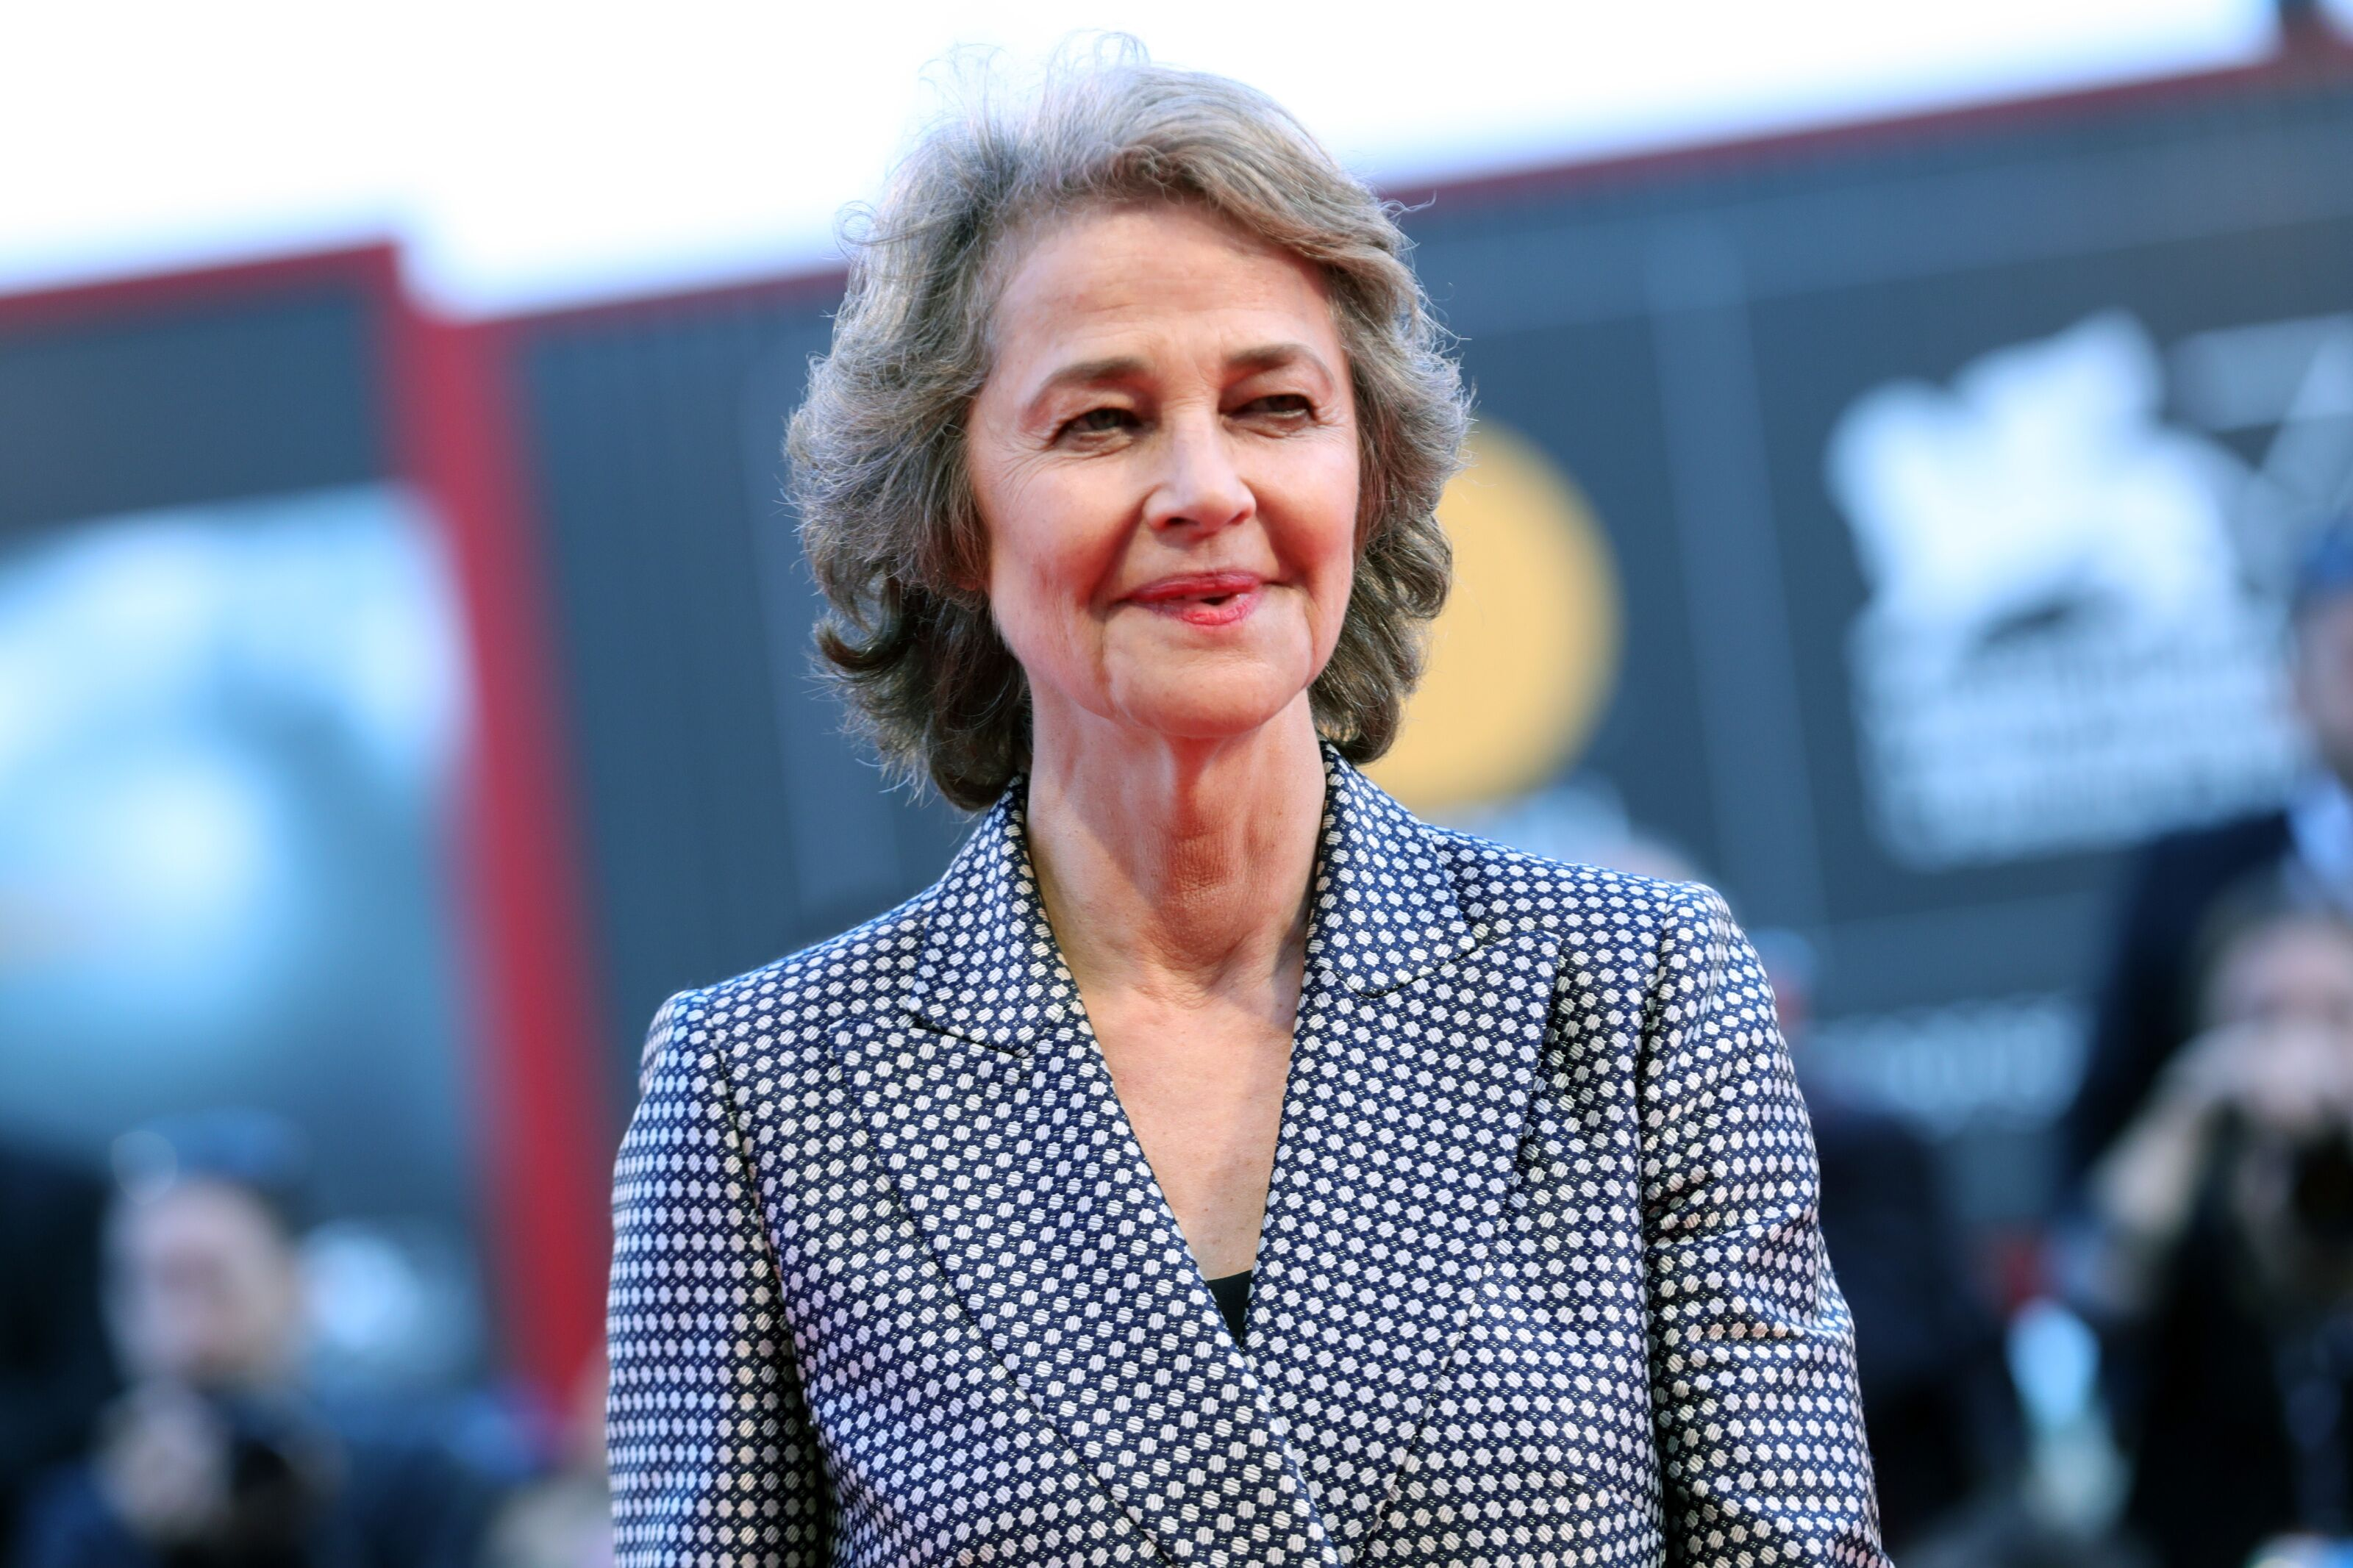 Charlotte Rampling joins cast of Denis Villeneuve's Dune movie